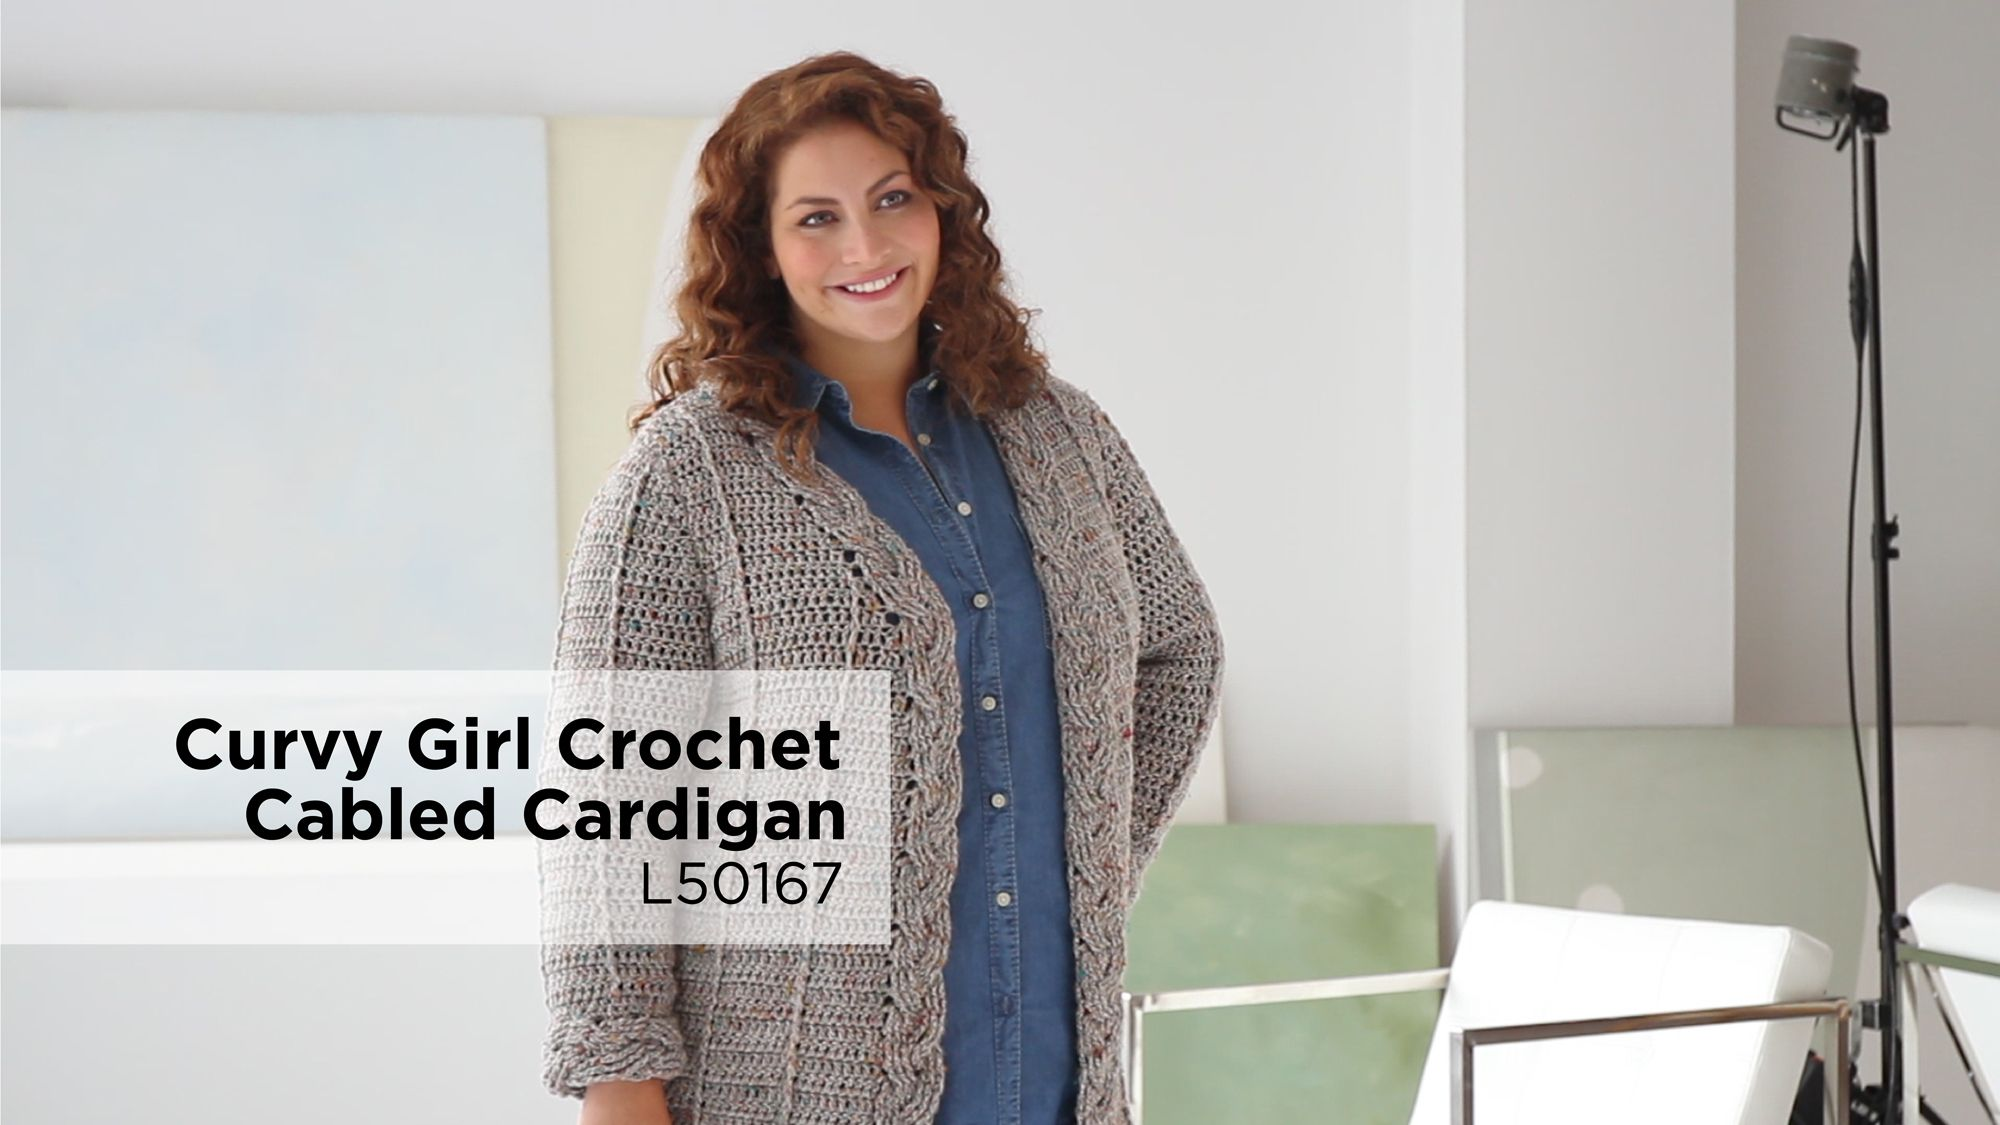 curvy girl crochet cabled cardigan free pattern from Lion ...